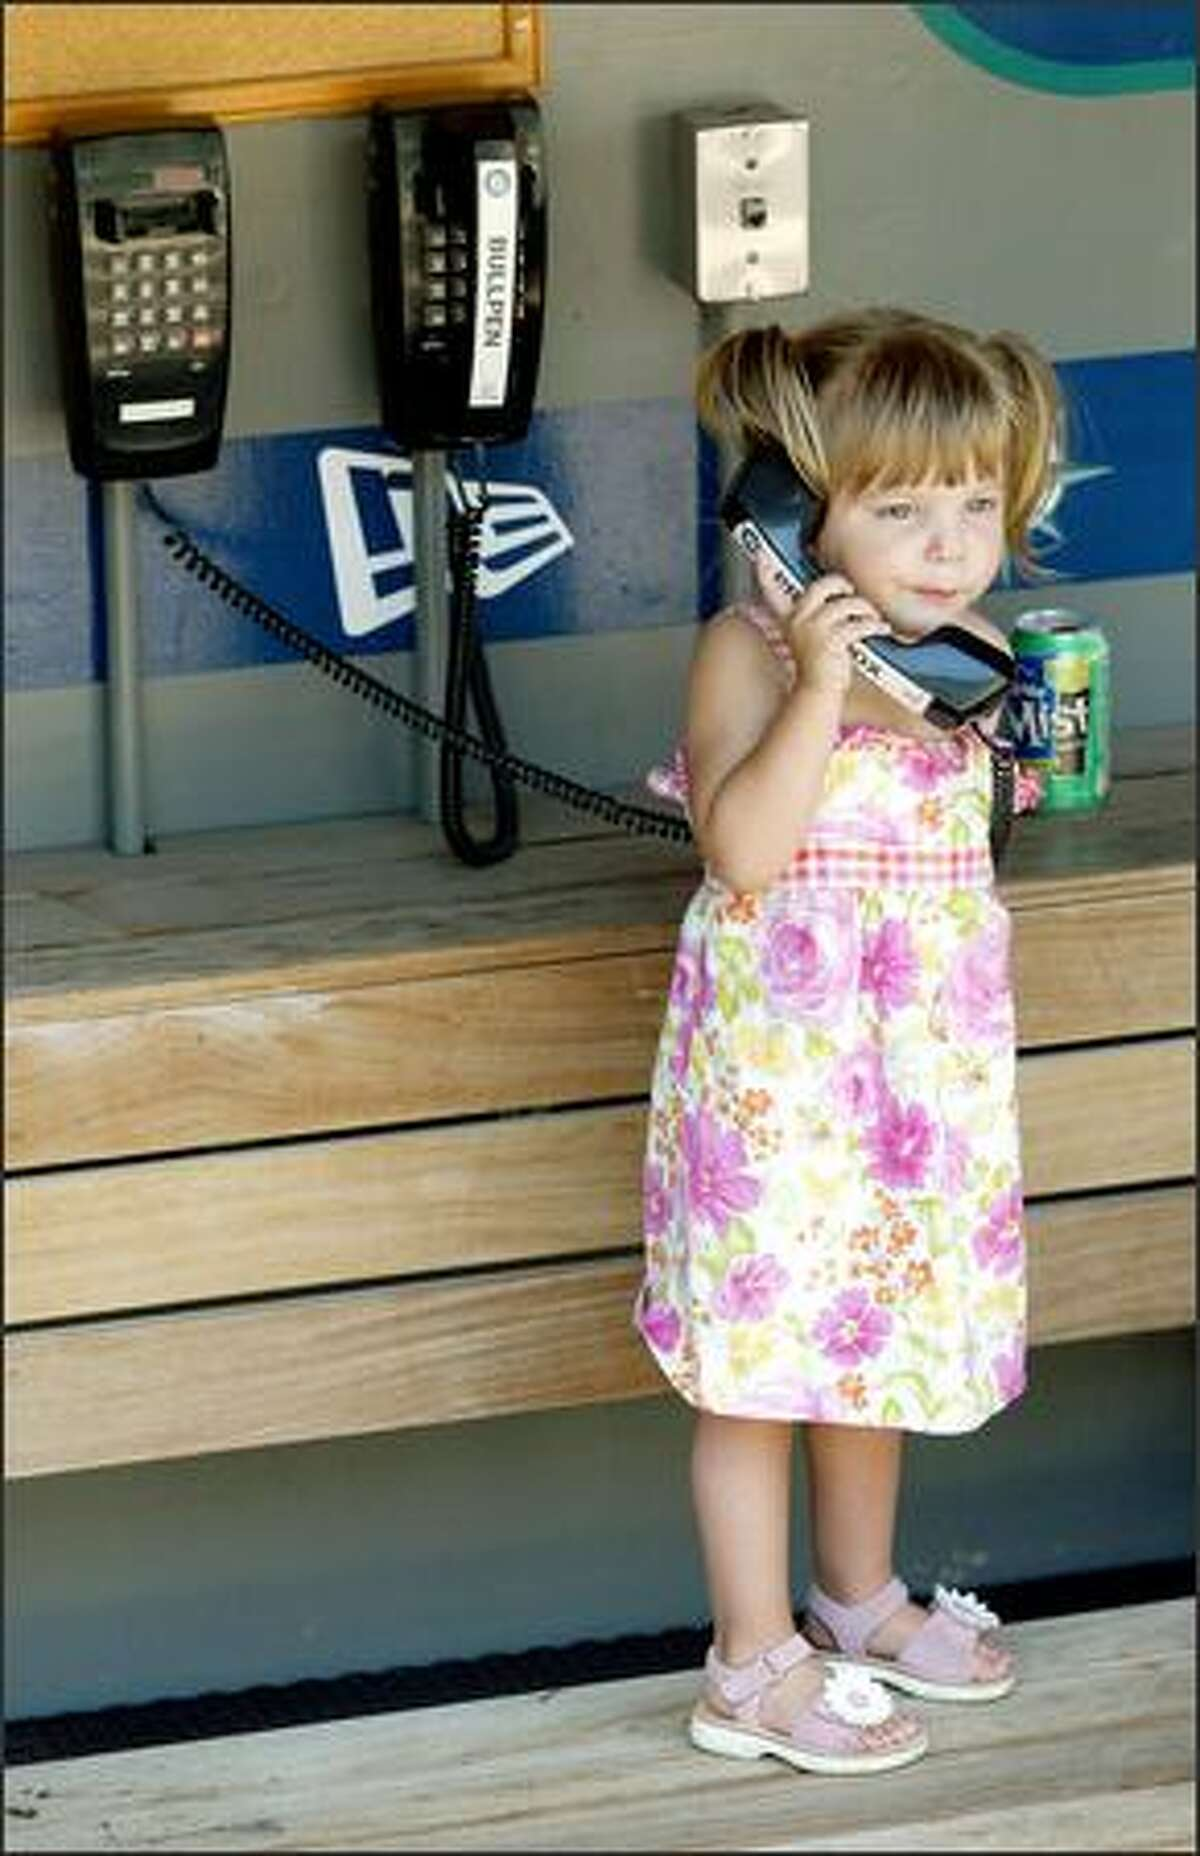 Tessa Martinez plays with the phone in the visitor's dugout at Safeco Field following her father's announcement.